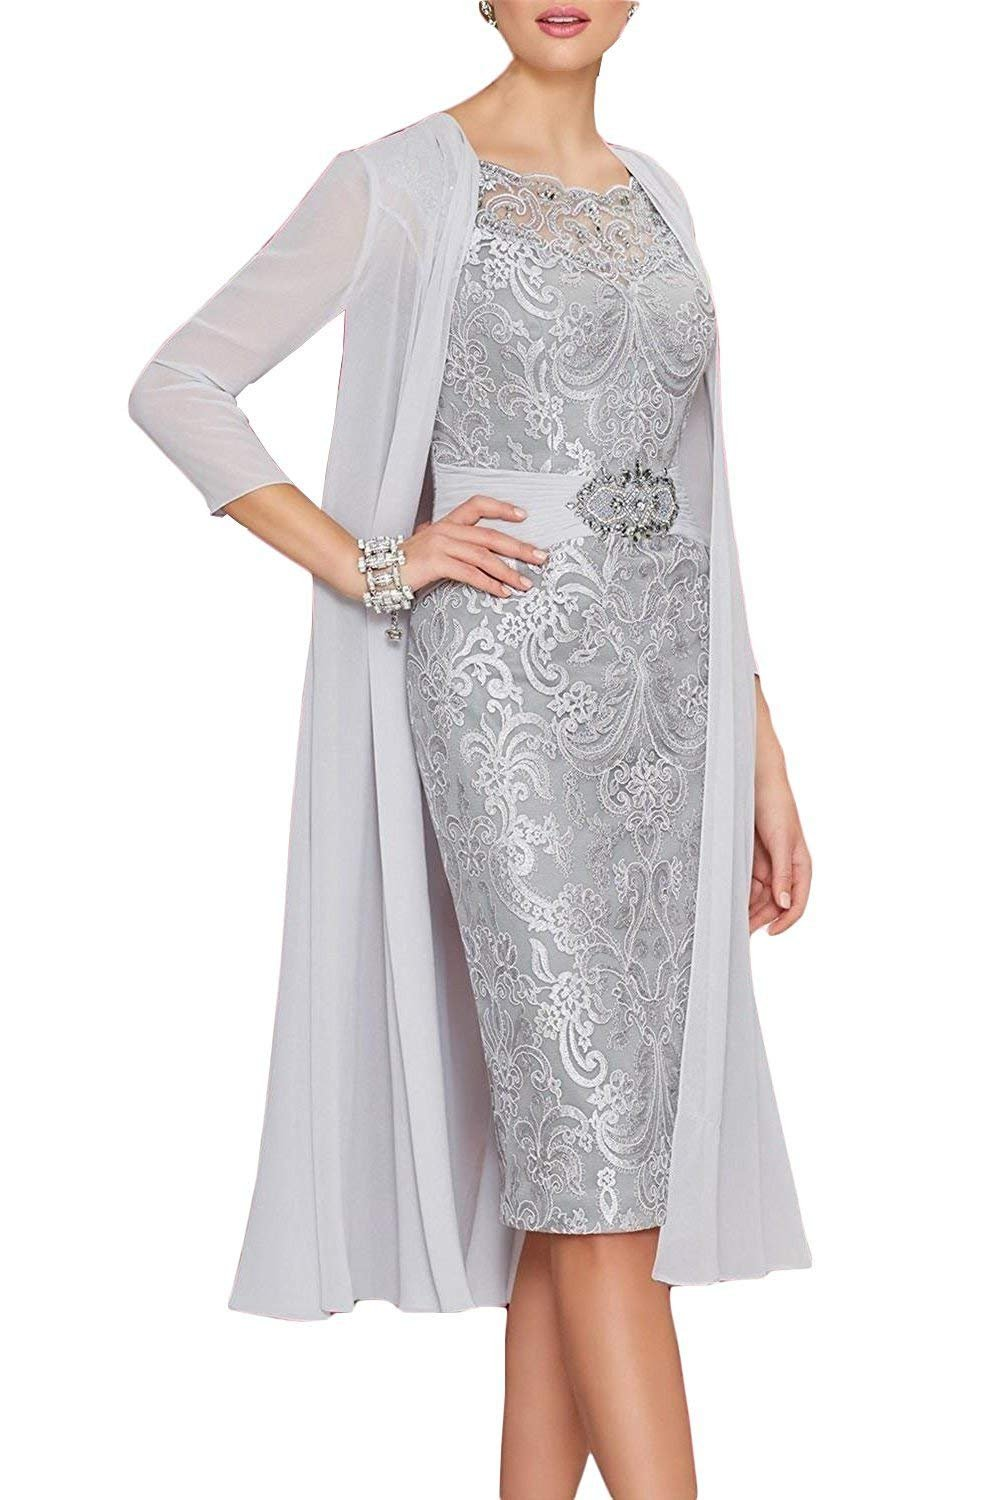 5556fa39520e Newdeve Chiffon Mother of The Bride Dresses Tea Length Two Pieces with  Jacket Grey